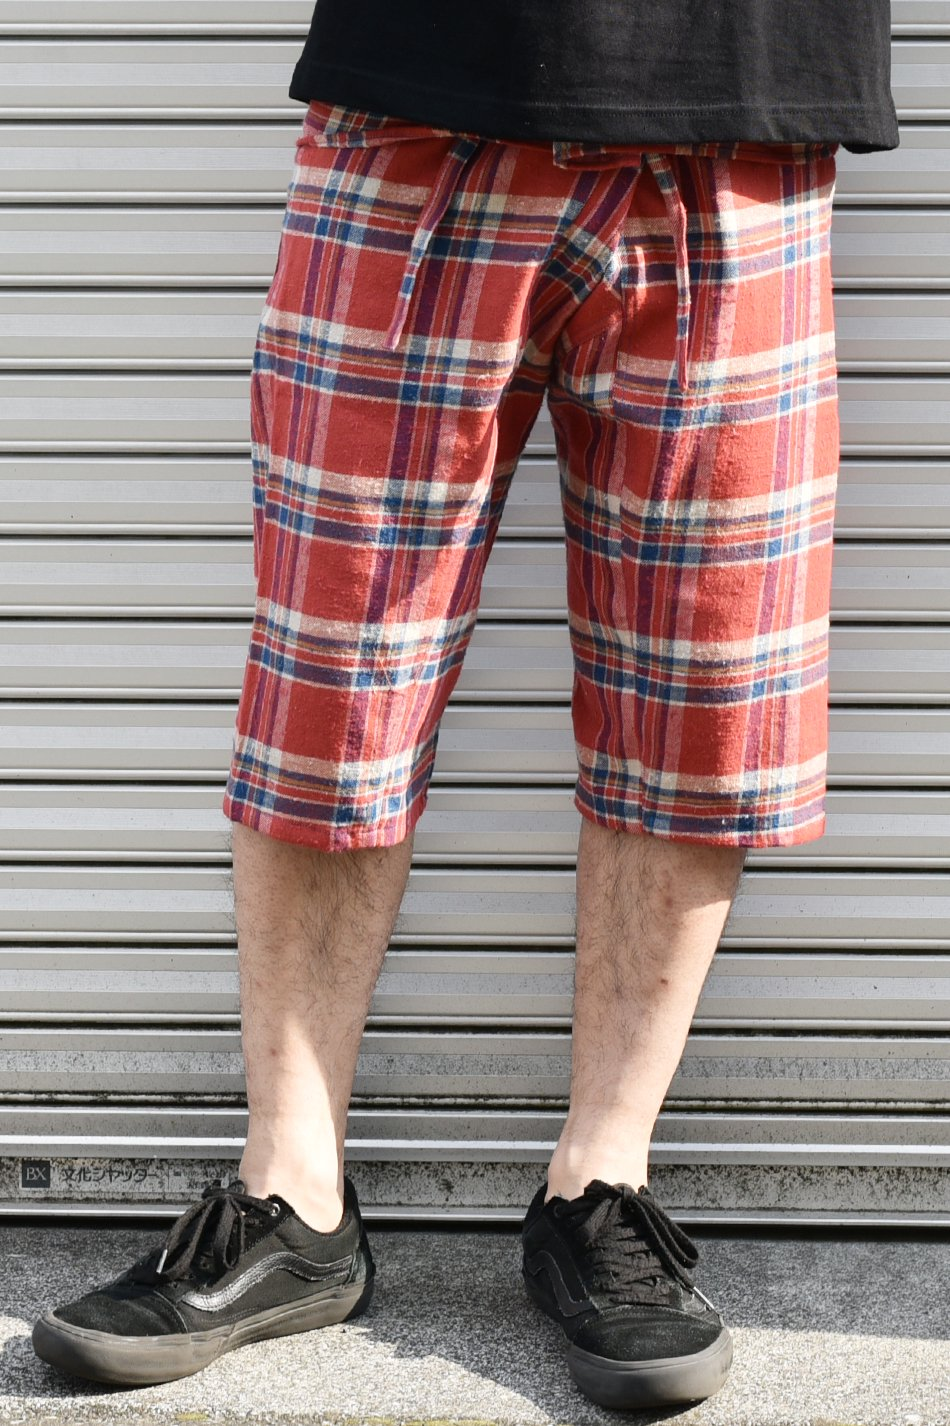 ARIGATO FAKKYU - アリガトファッキュ SHORT THAI PANTS / RED<img class='new_mark_img2' src='https://img.shop-pro.jp/img/new/icons5.gif' style='border:none;display:inline;margin:0px;padding:0px;width:auto;' />